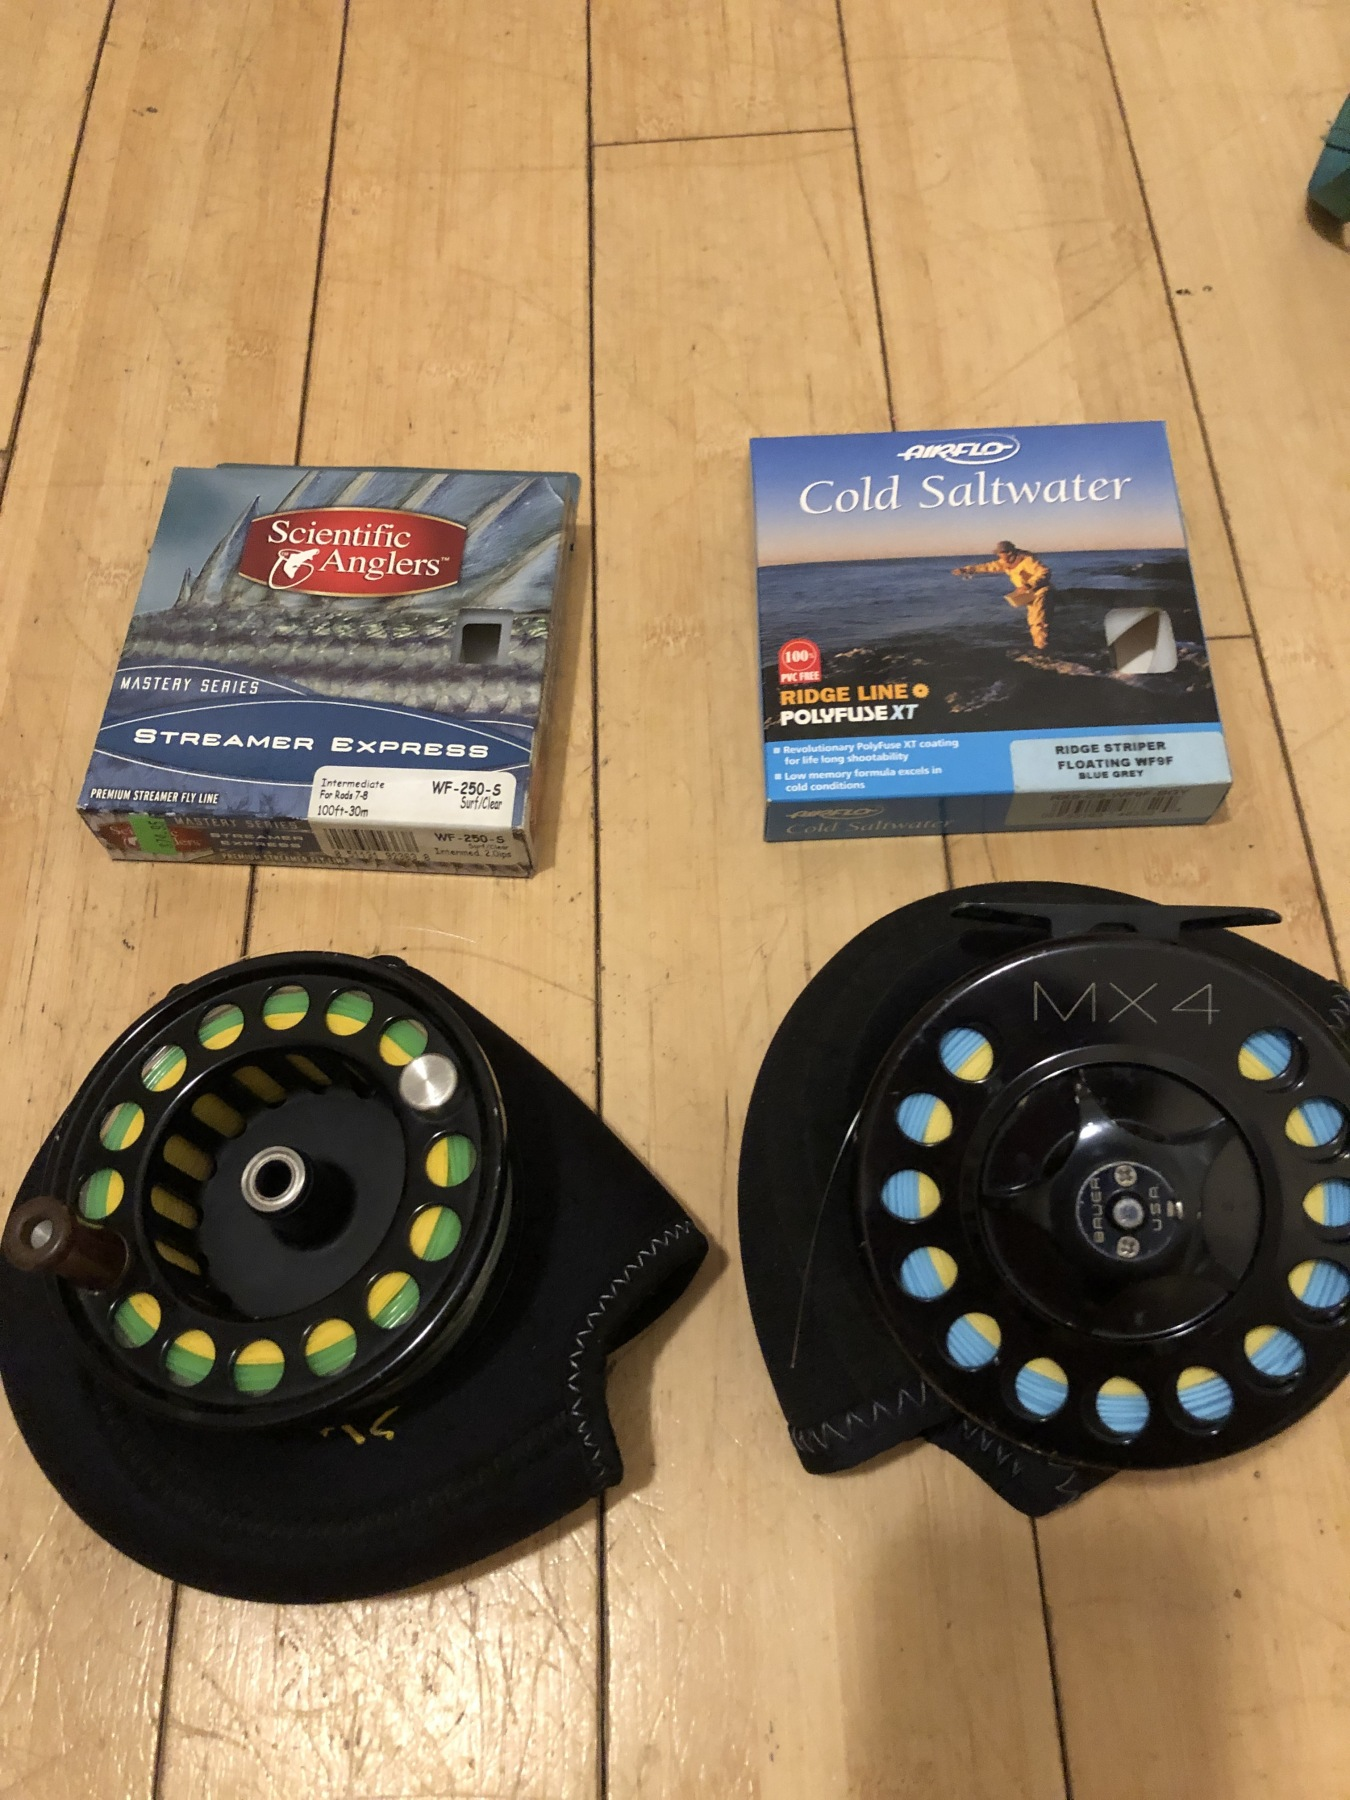 Bauer MX4 reel and spool plus lines